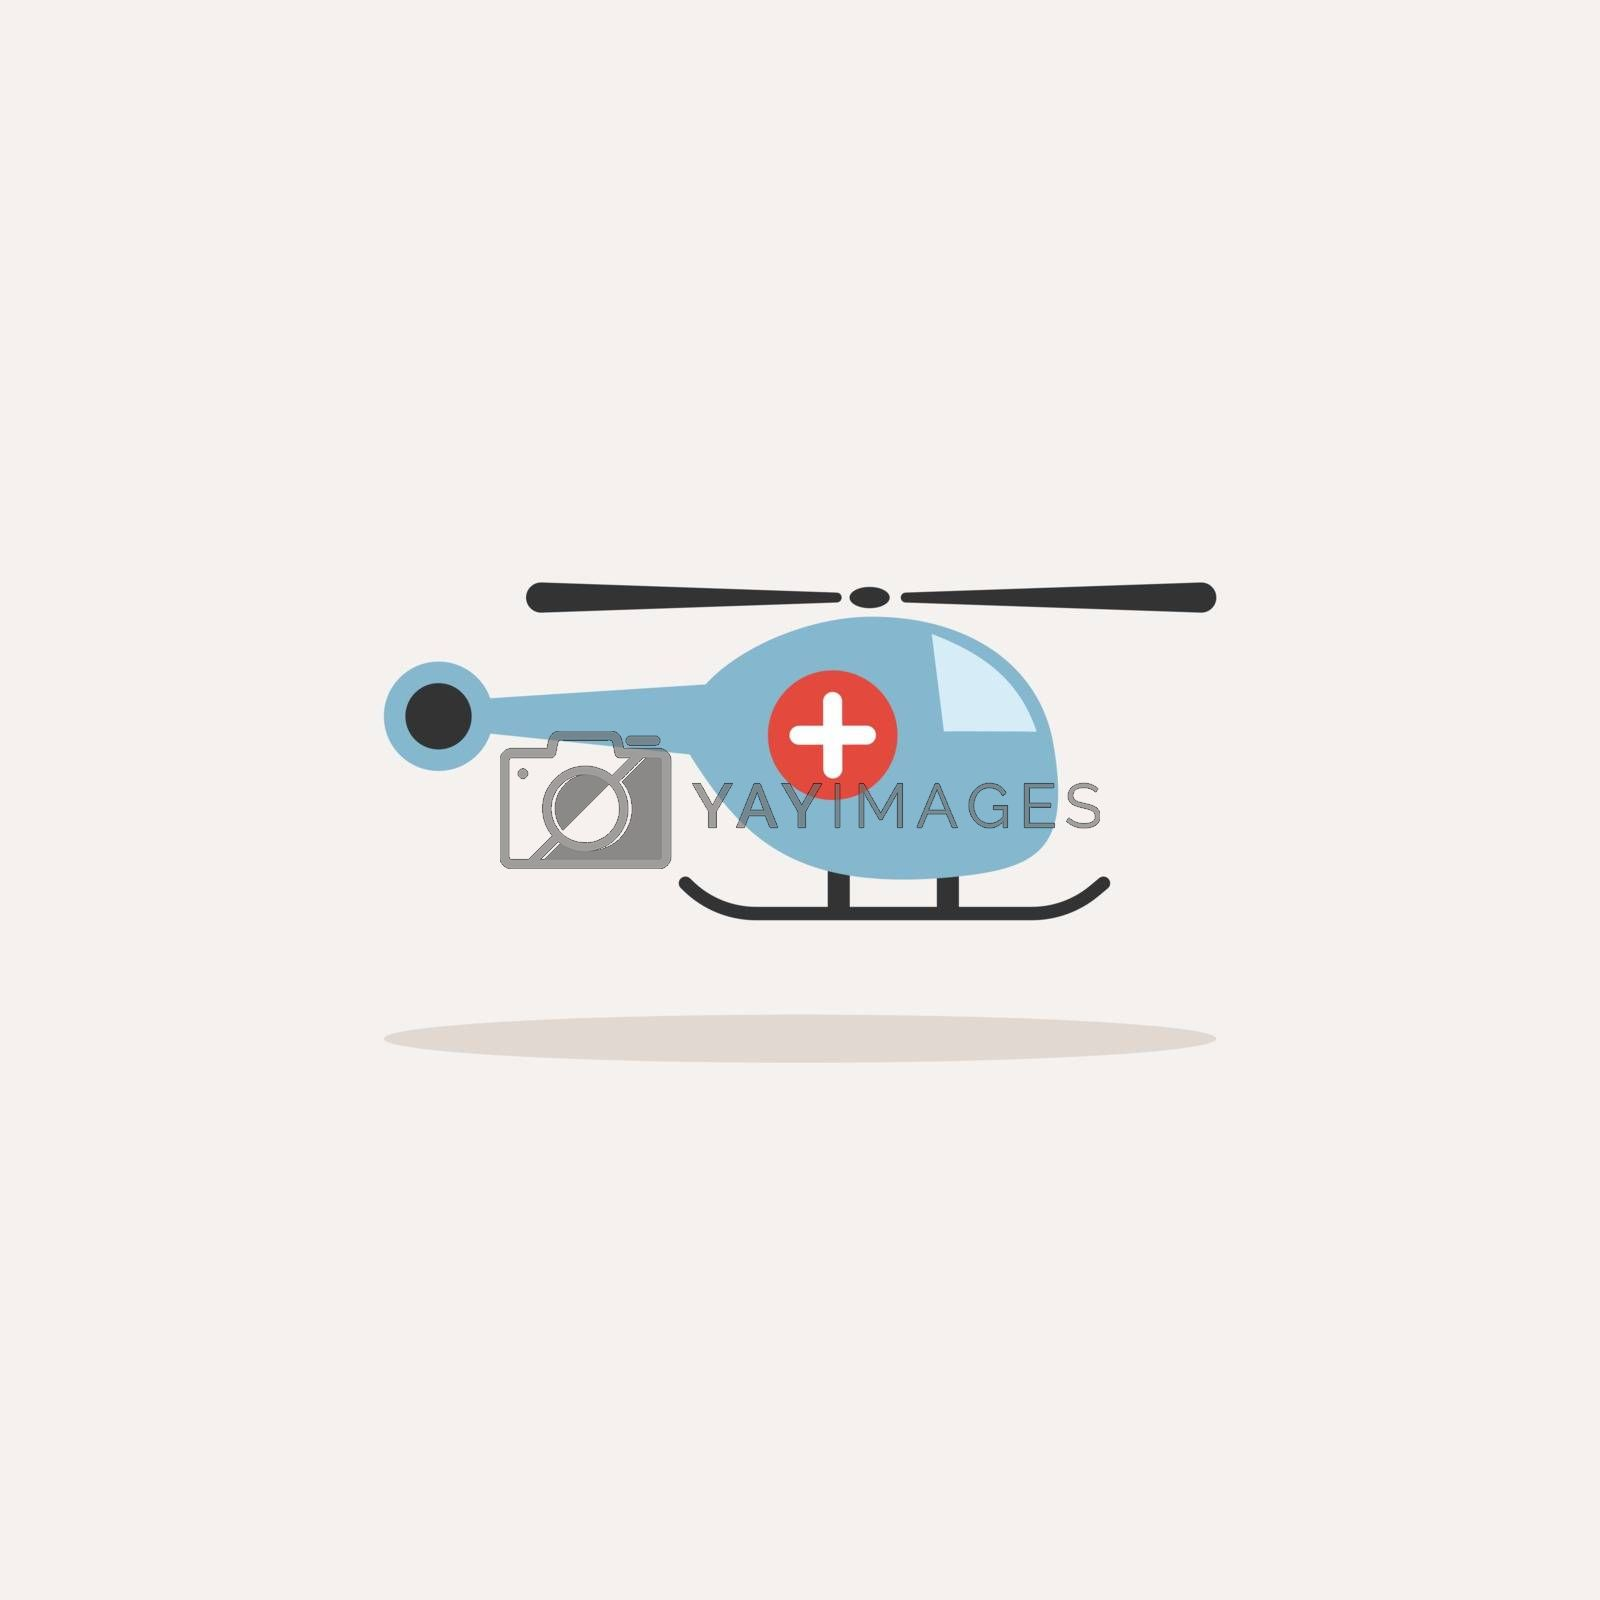 Emergency helicopter icon with shade on a beige background by imaagioStock